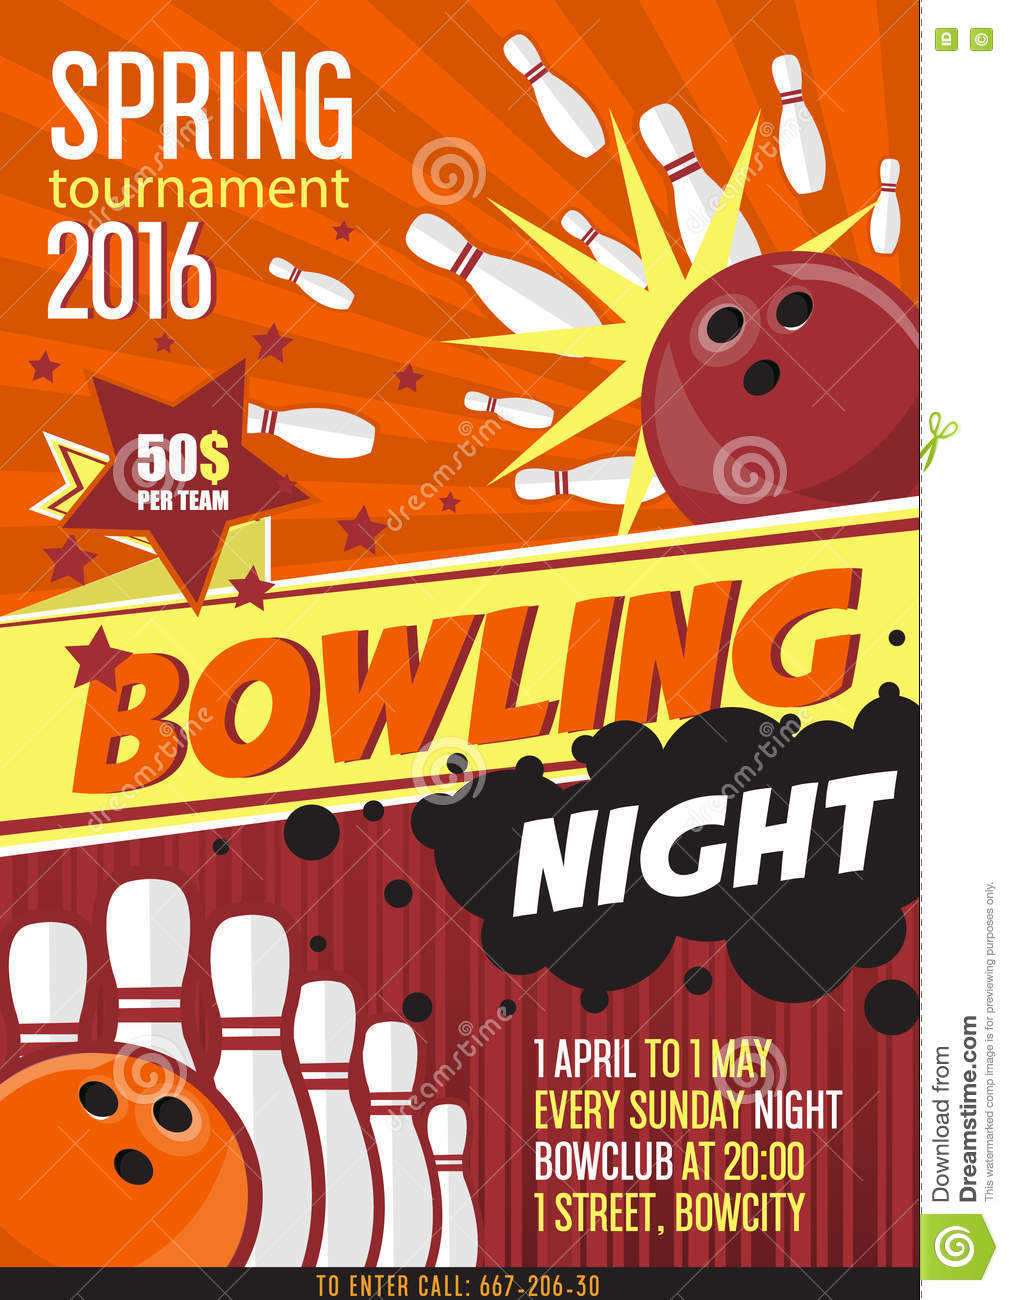 Bowling Invitation Template | The-Ceramic-Cookware.com